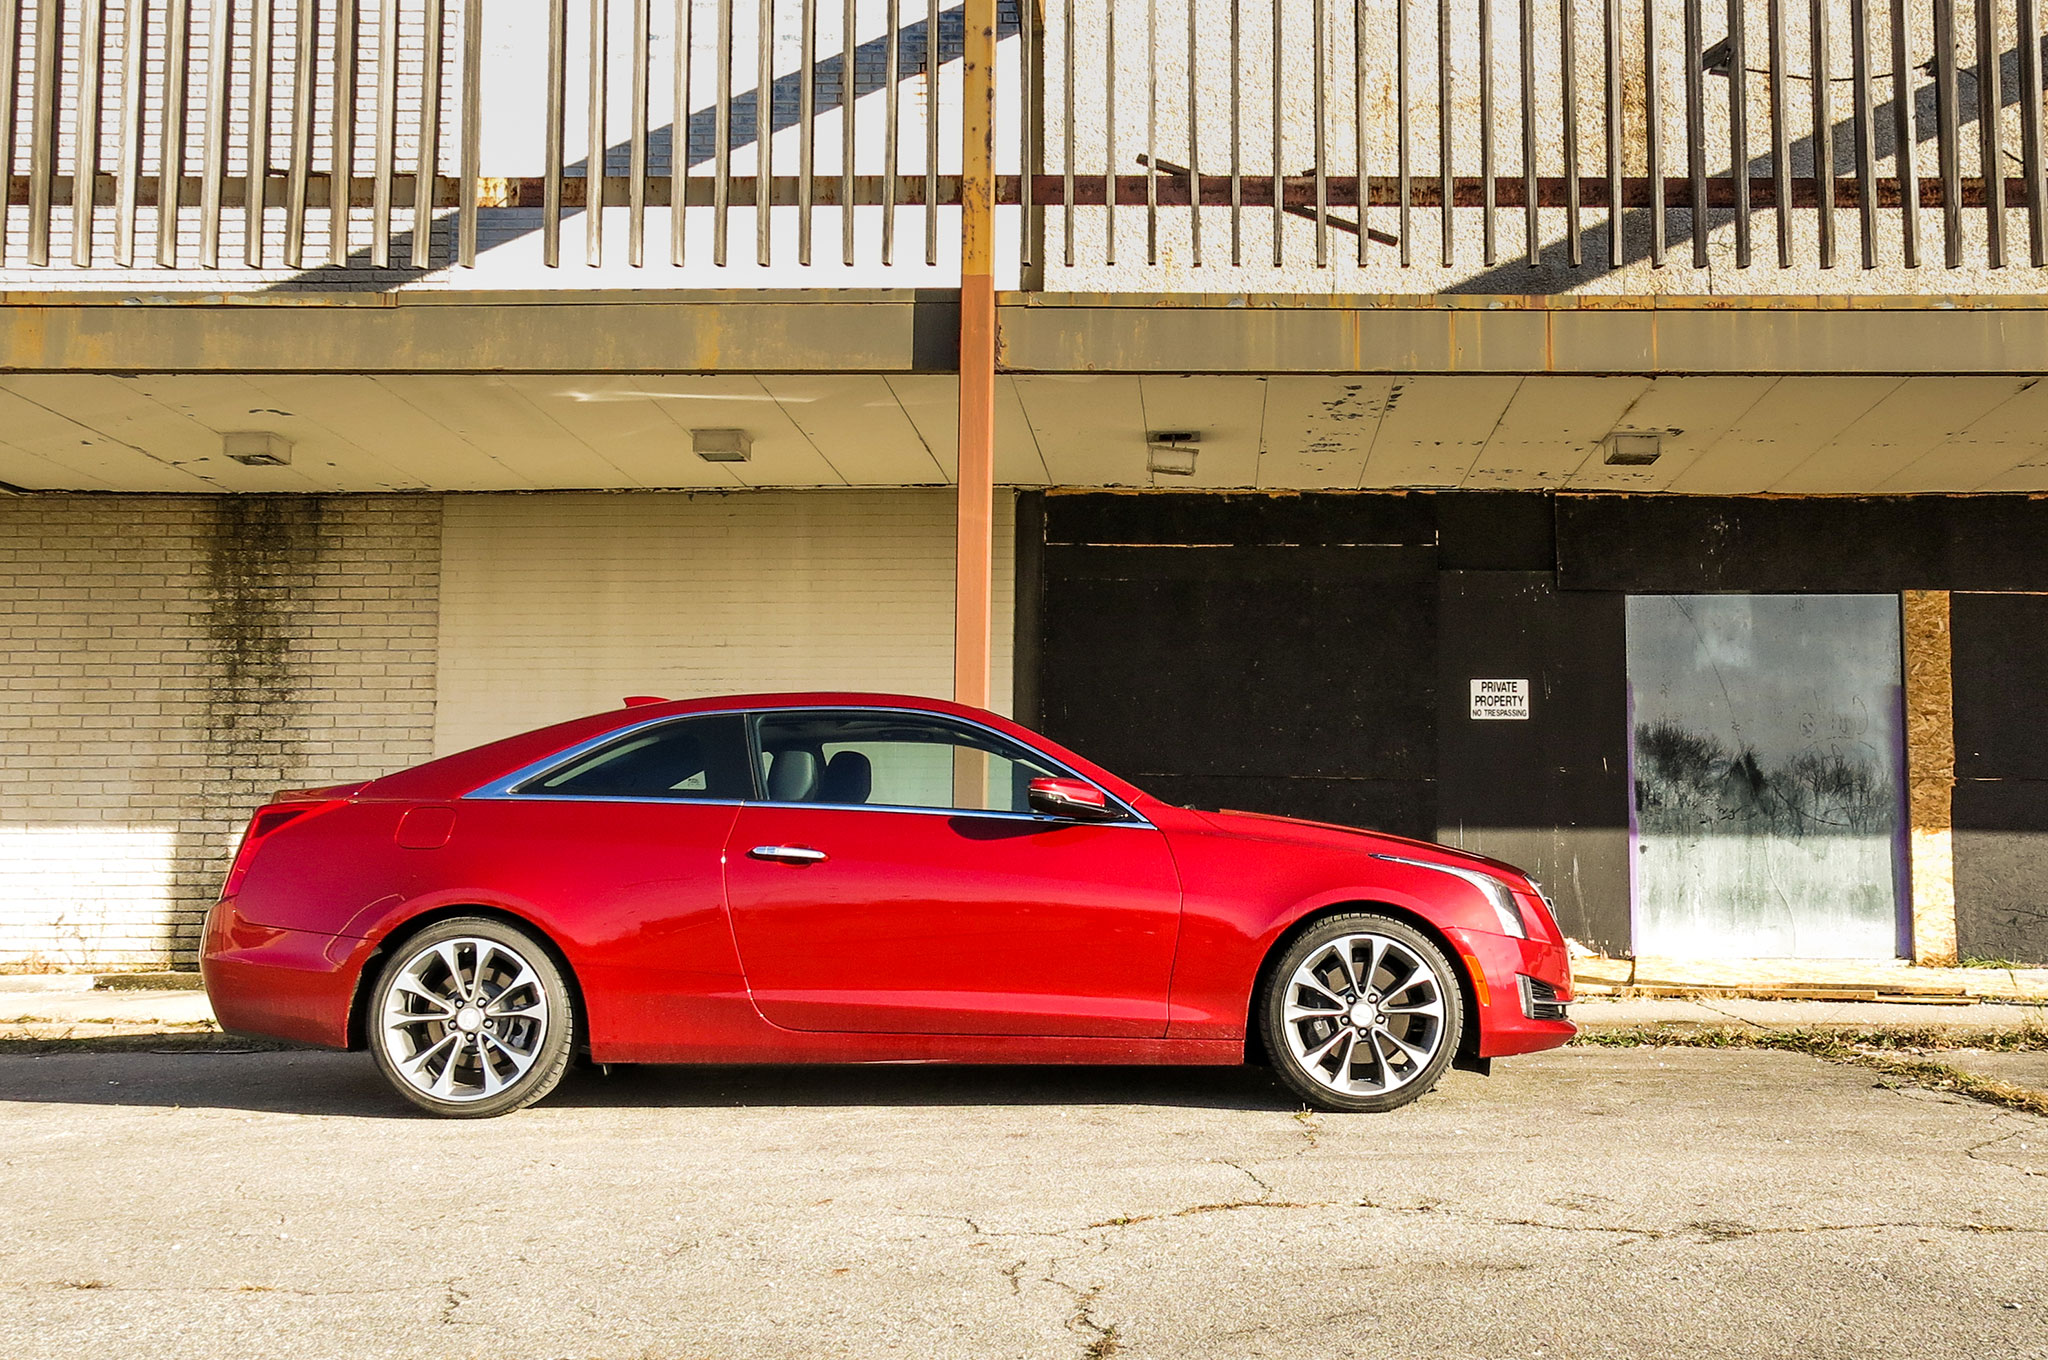 2016 Cadillac Ats Coupe Review >> 2016 Cadillac ATS Coupe 3.6L Premium Review